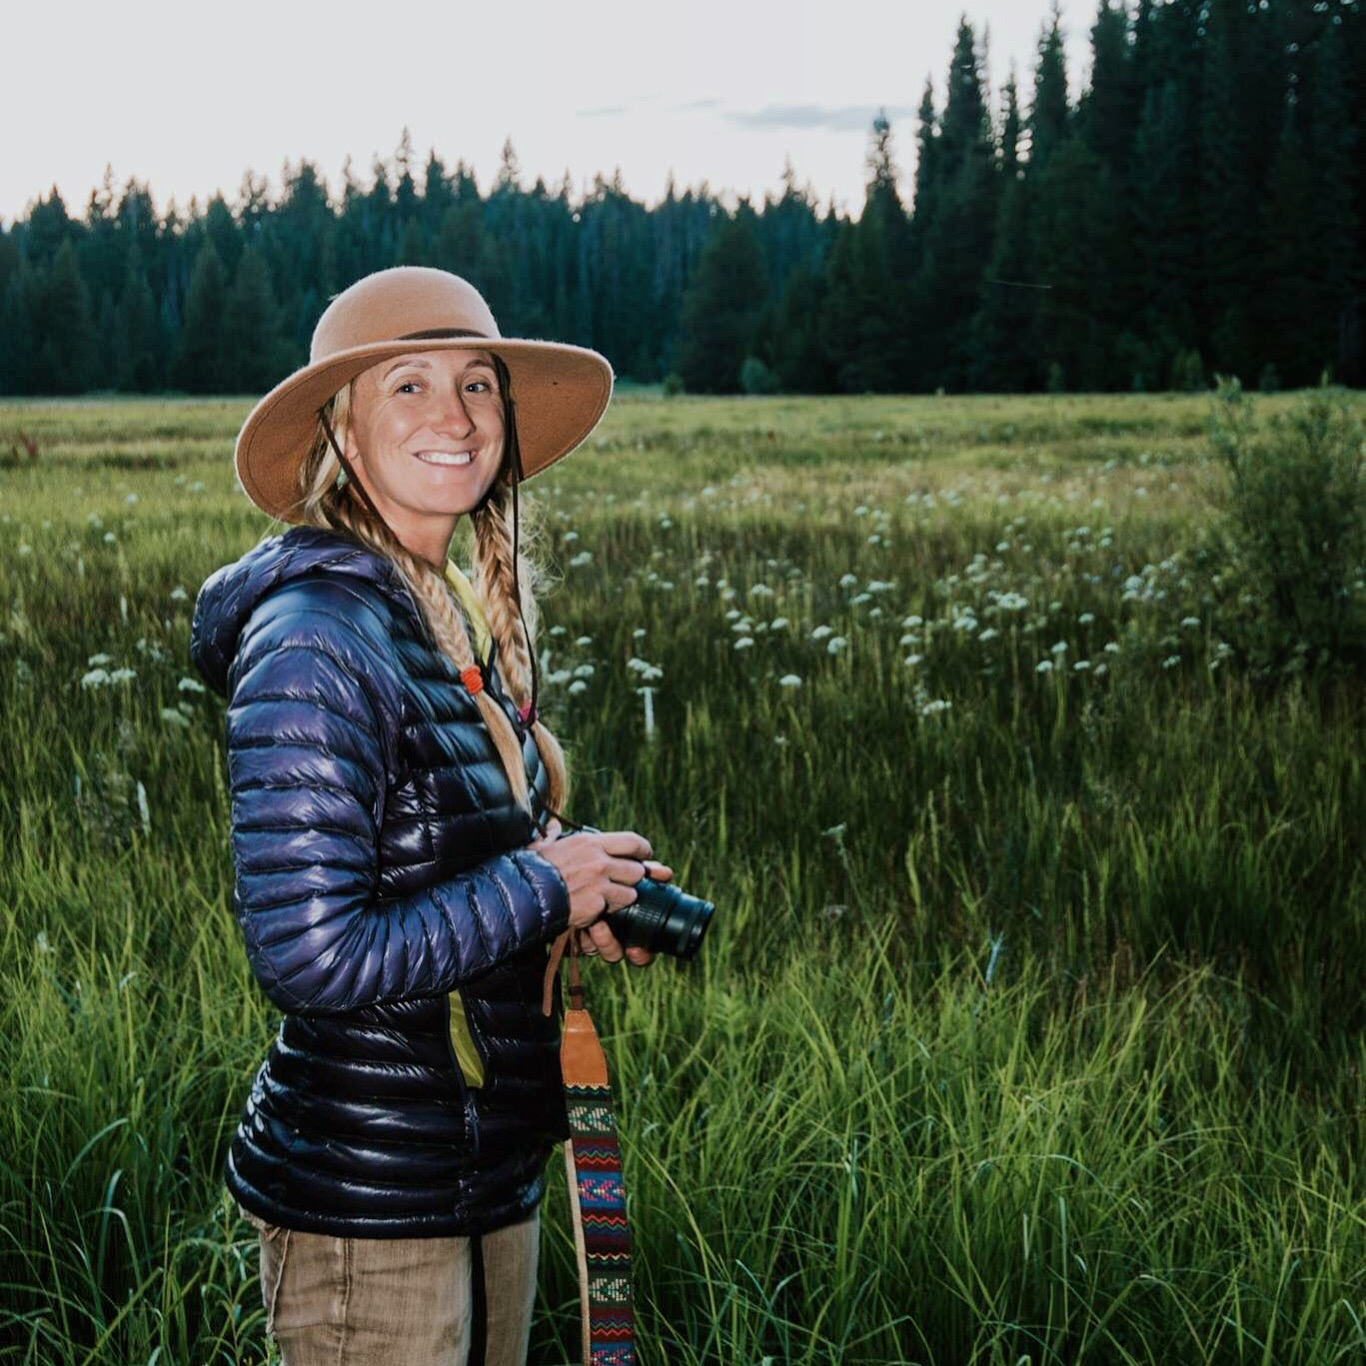 ALI LEV | GROUP experience LEADER OCT'18 EBC TREK - I'm an Salt Lake City native that is currently based in Vancouver, WA. I am a people person and consider myself a creative at heart. Connecting people to the outdoors is one of my greatest passions and I love speaking about the benefits nature can have on our mental health. I have had the opportunity to plan and lead events for women in the outdoors for the past two years. My goal is always to help women overcome self-doubt and conquer goals in the outdoors - big or small. I am certified in Wilderness First Aid and always encourage people to adhere to Leave No Trace principles.My role as a group leader will be to represent Travel Her Way and be a point of contact for our in country team during the adventures. I will work closely with our guides for trip arrangements and updated information to share. But most importantly I am there to help provide an encouraging and positive atmosphere for the group.